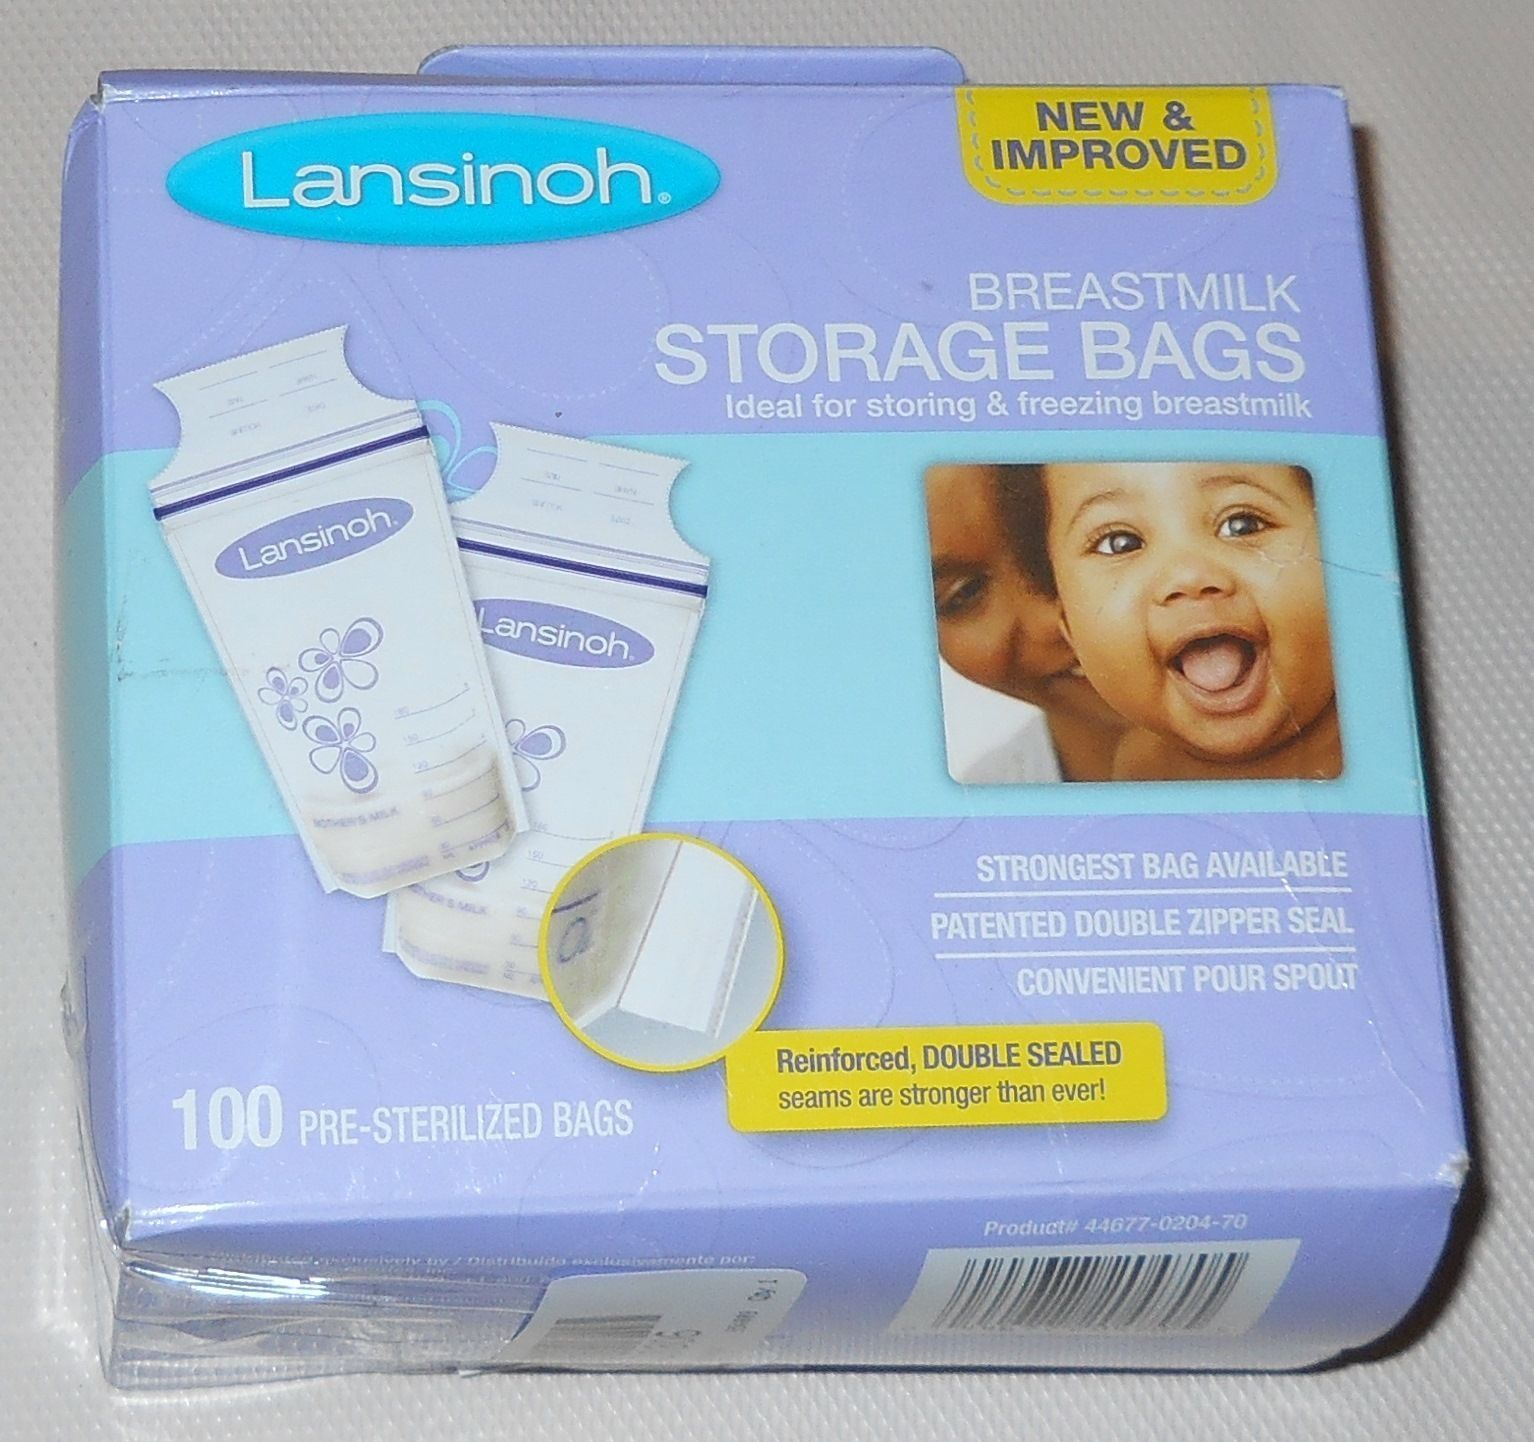 Lansinoh Breast Milk Storage Bags, 100 Count Perfect for Storing and Freezing - $18.81